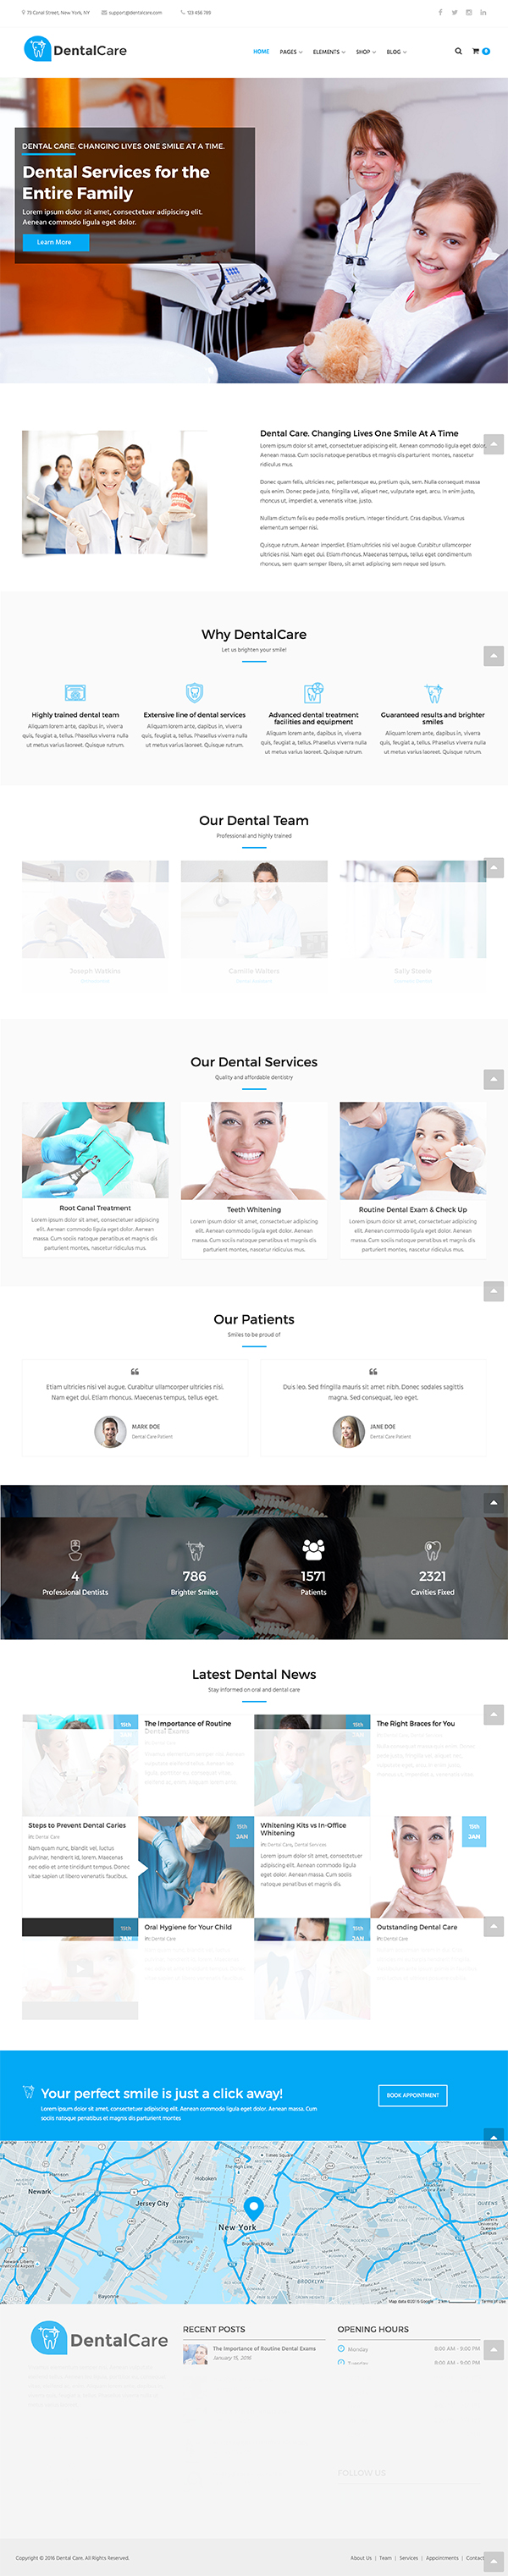 12 Dental Care - Dental & Medical WordPress Theme